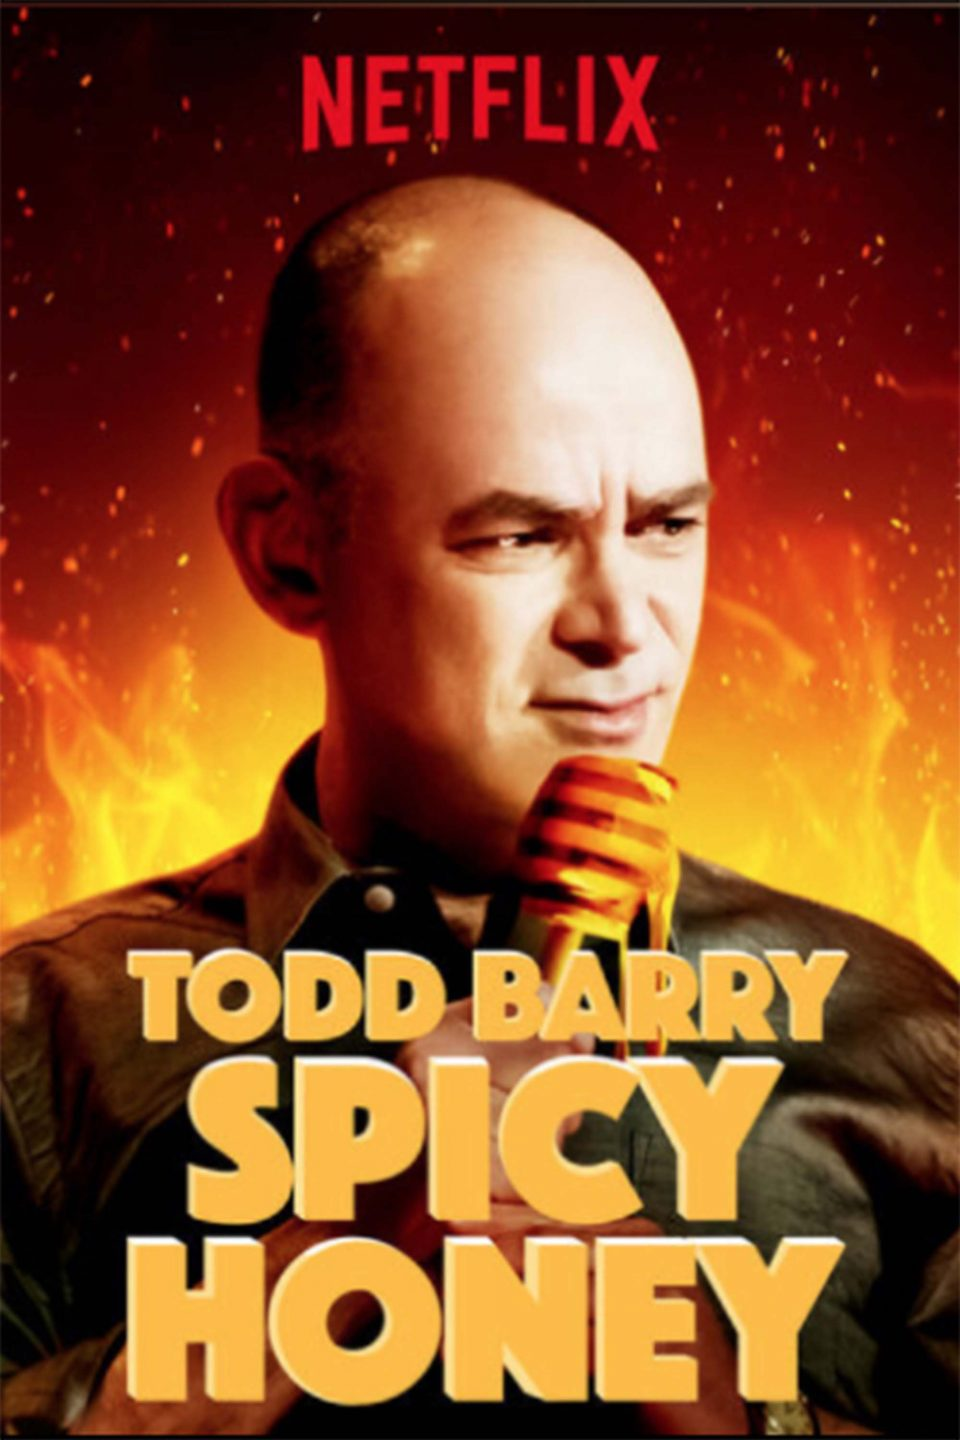 Todd Barry Spicey Honey V